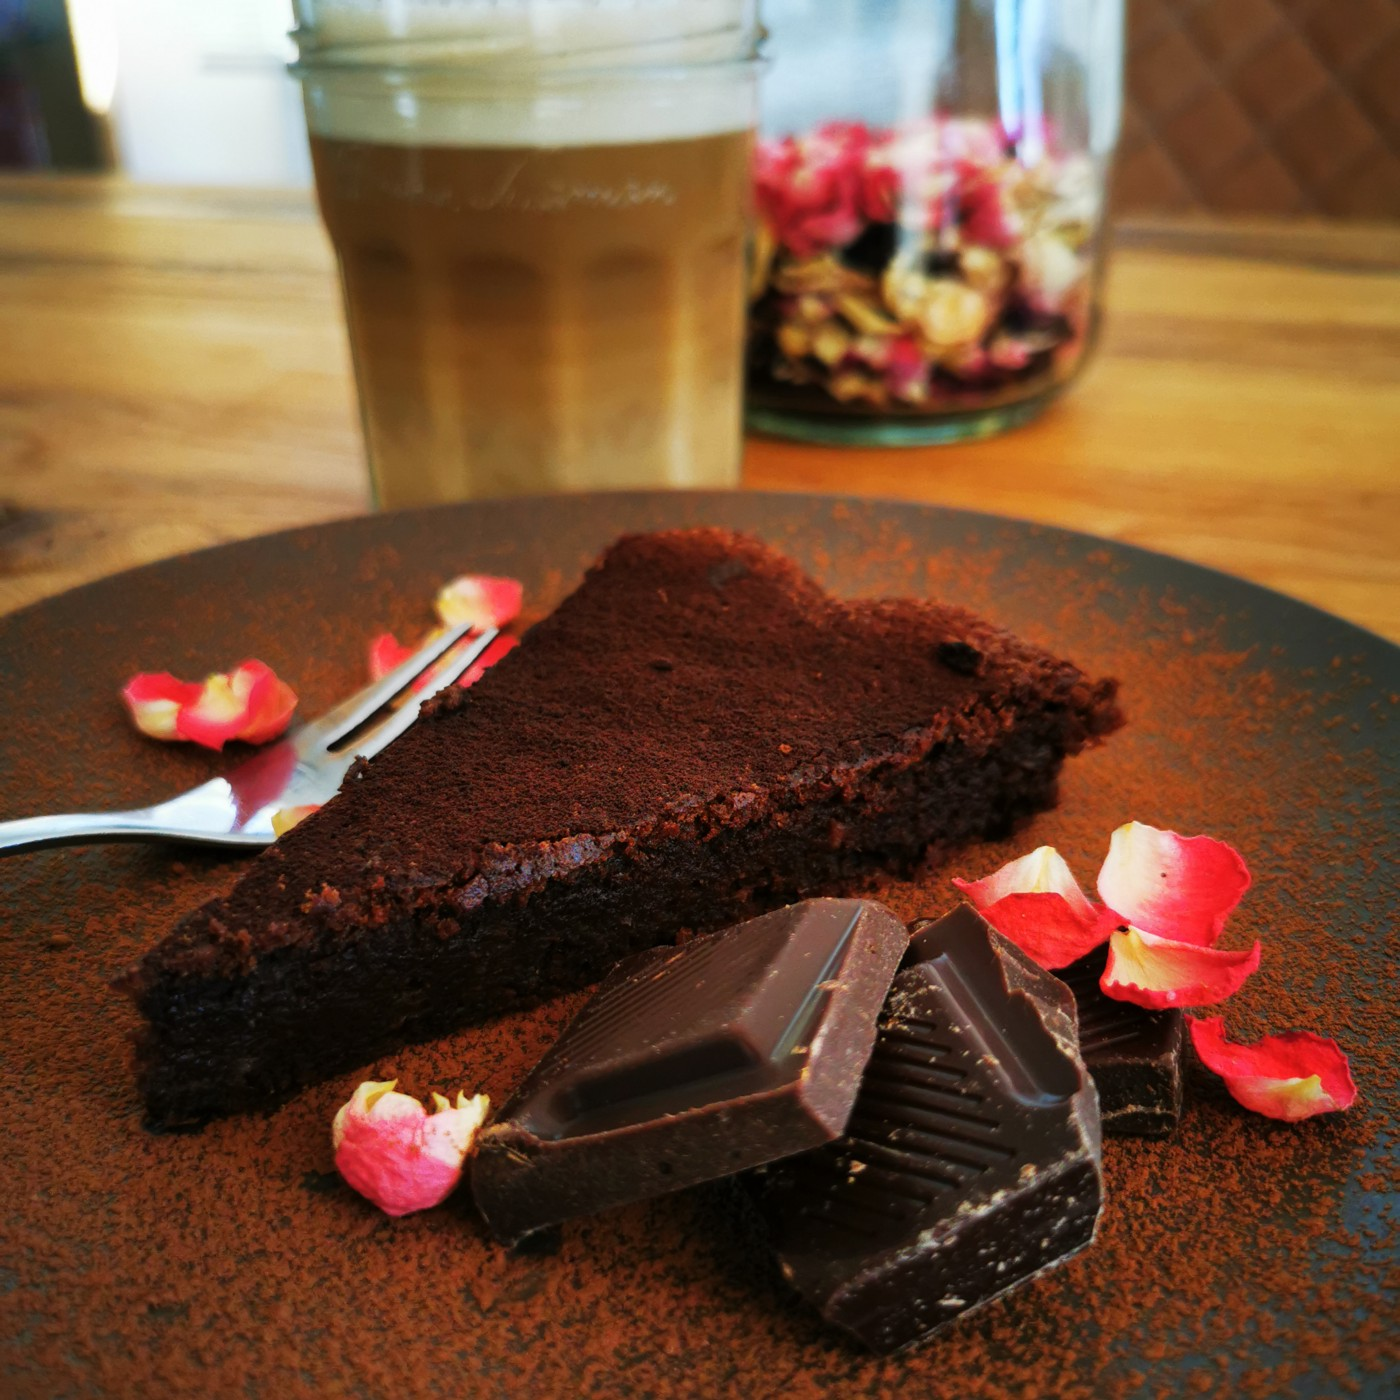 low-carb gluten-free chocolate cake by https://www.belly2brain.com/